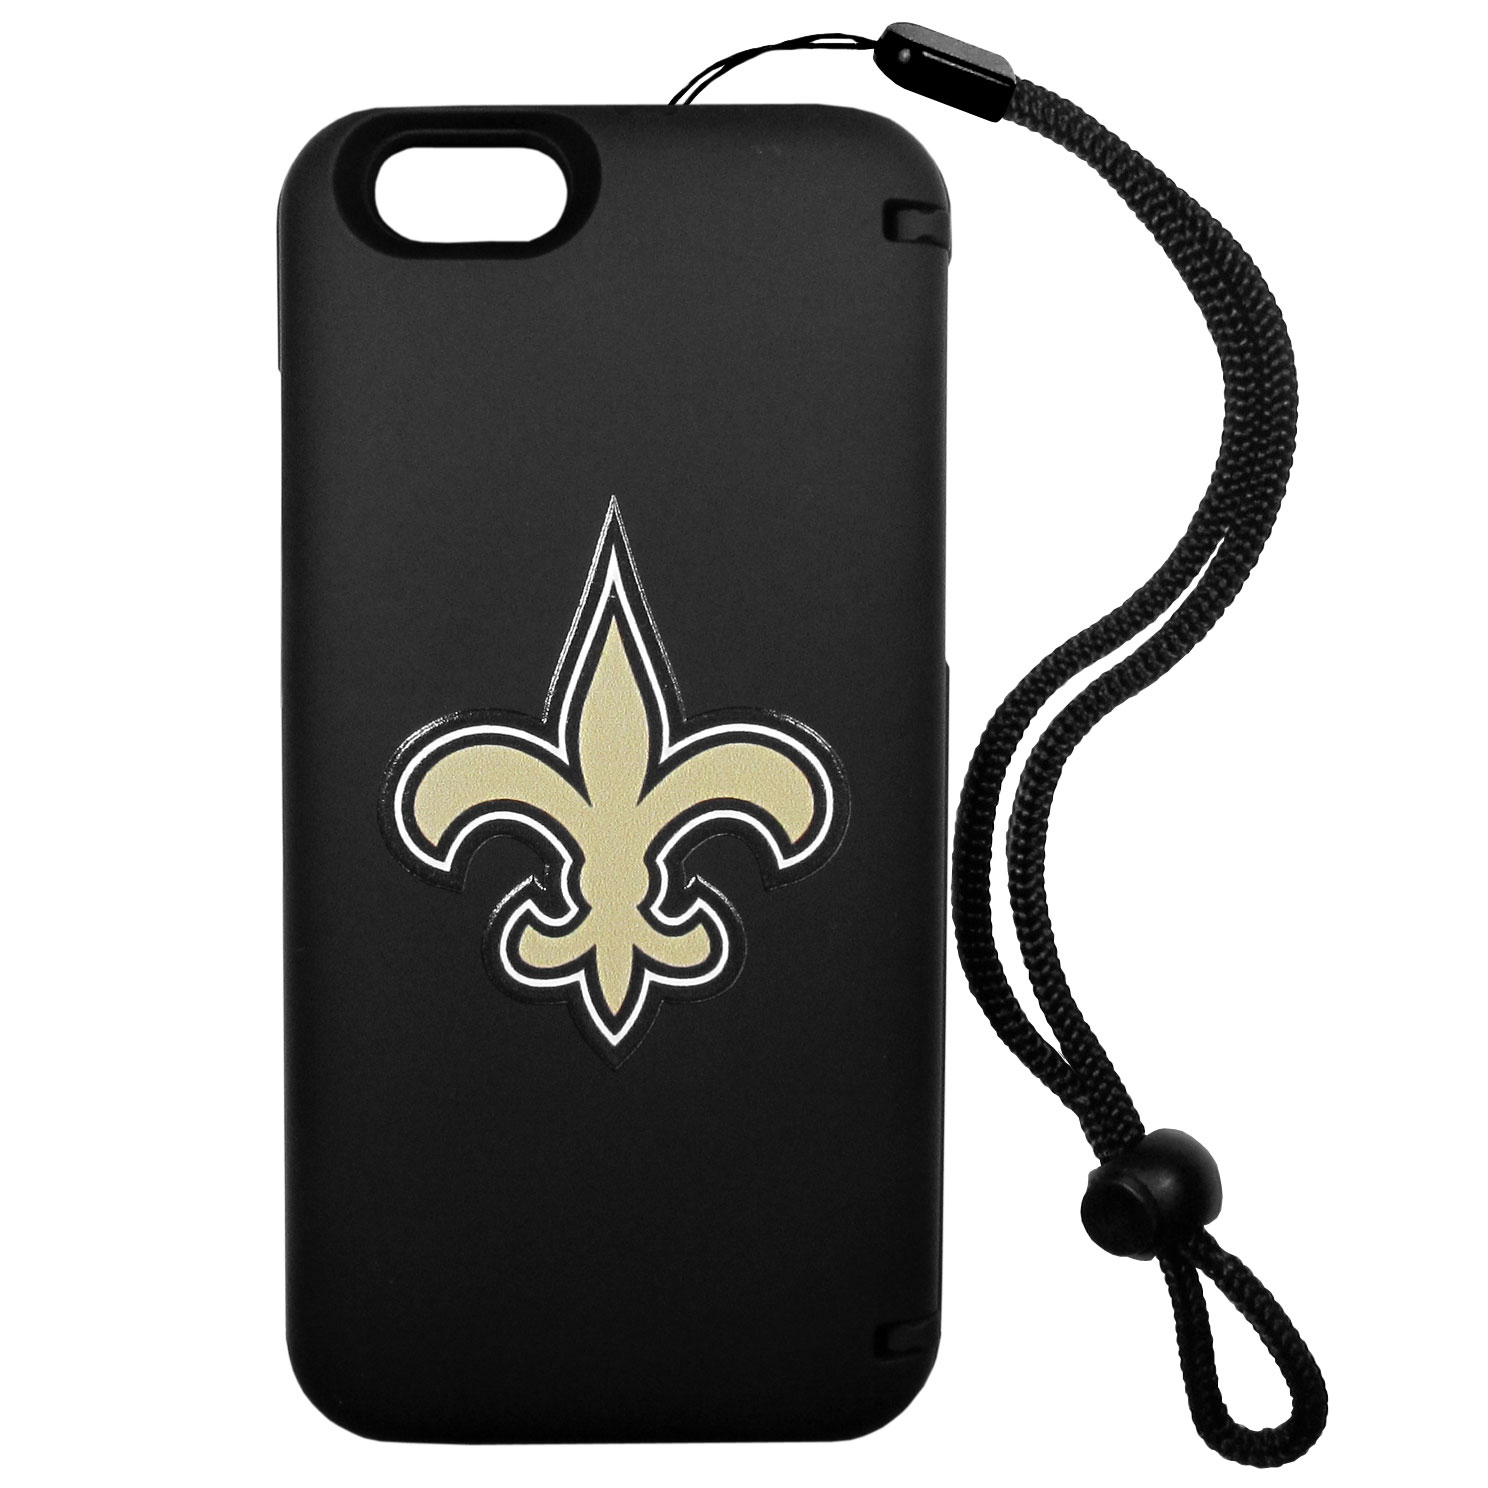 New Orleans Saints iPhone 6 Everything Case - This case really does have everything but the kitchen sink! The hidden compartment lets you keep your cards, money and tickets to the big game safe and secure and has a compact mirror so you can make sure your game face is ready to go. It also comes with a kickstand to make chatting and watching videos a breeze. The wrist strap allows you to travel with ease with your everything case. If that's not enough, it also comes with the New Orleans Saints logo printed in expert detail on the front.